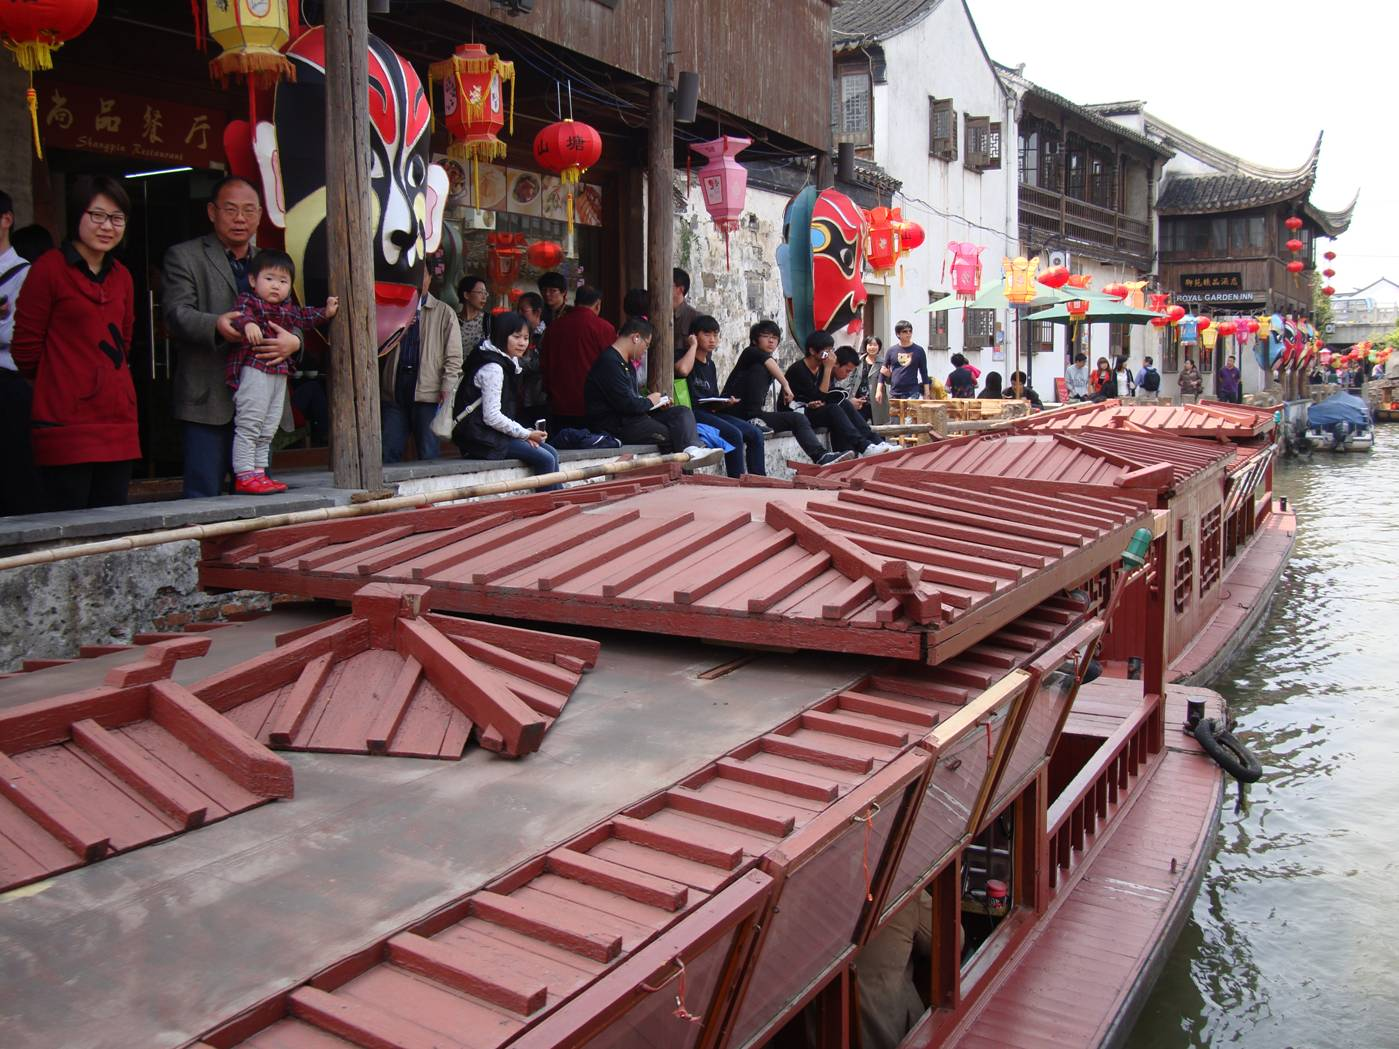 Picture:  The tour boats docked at our destination on the Suzhou canal, Suzhou, China.